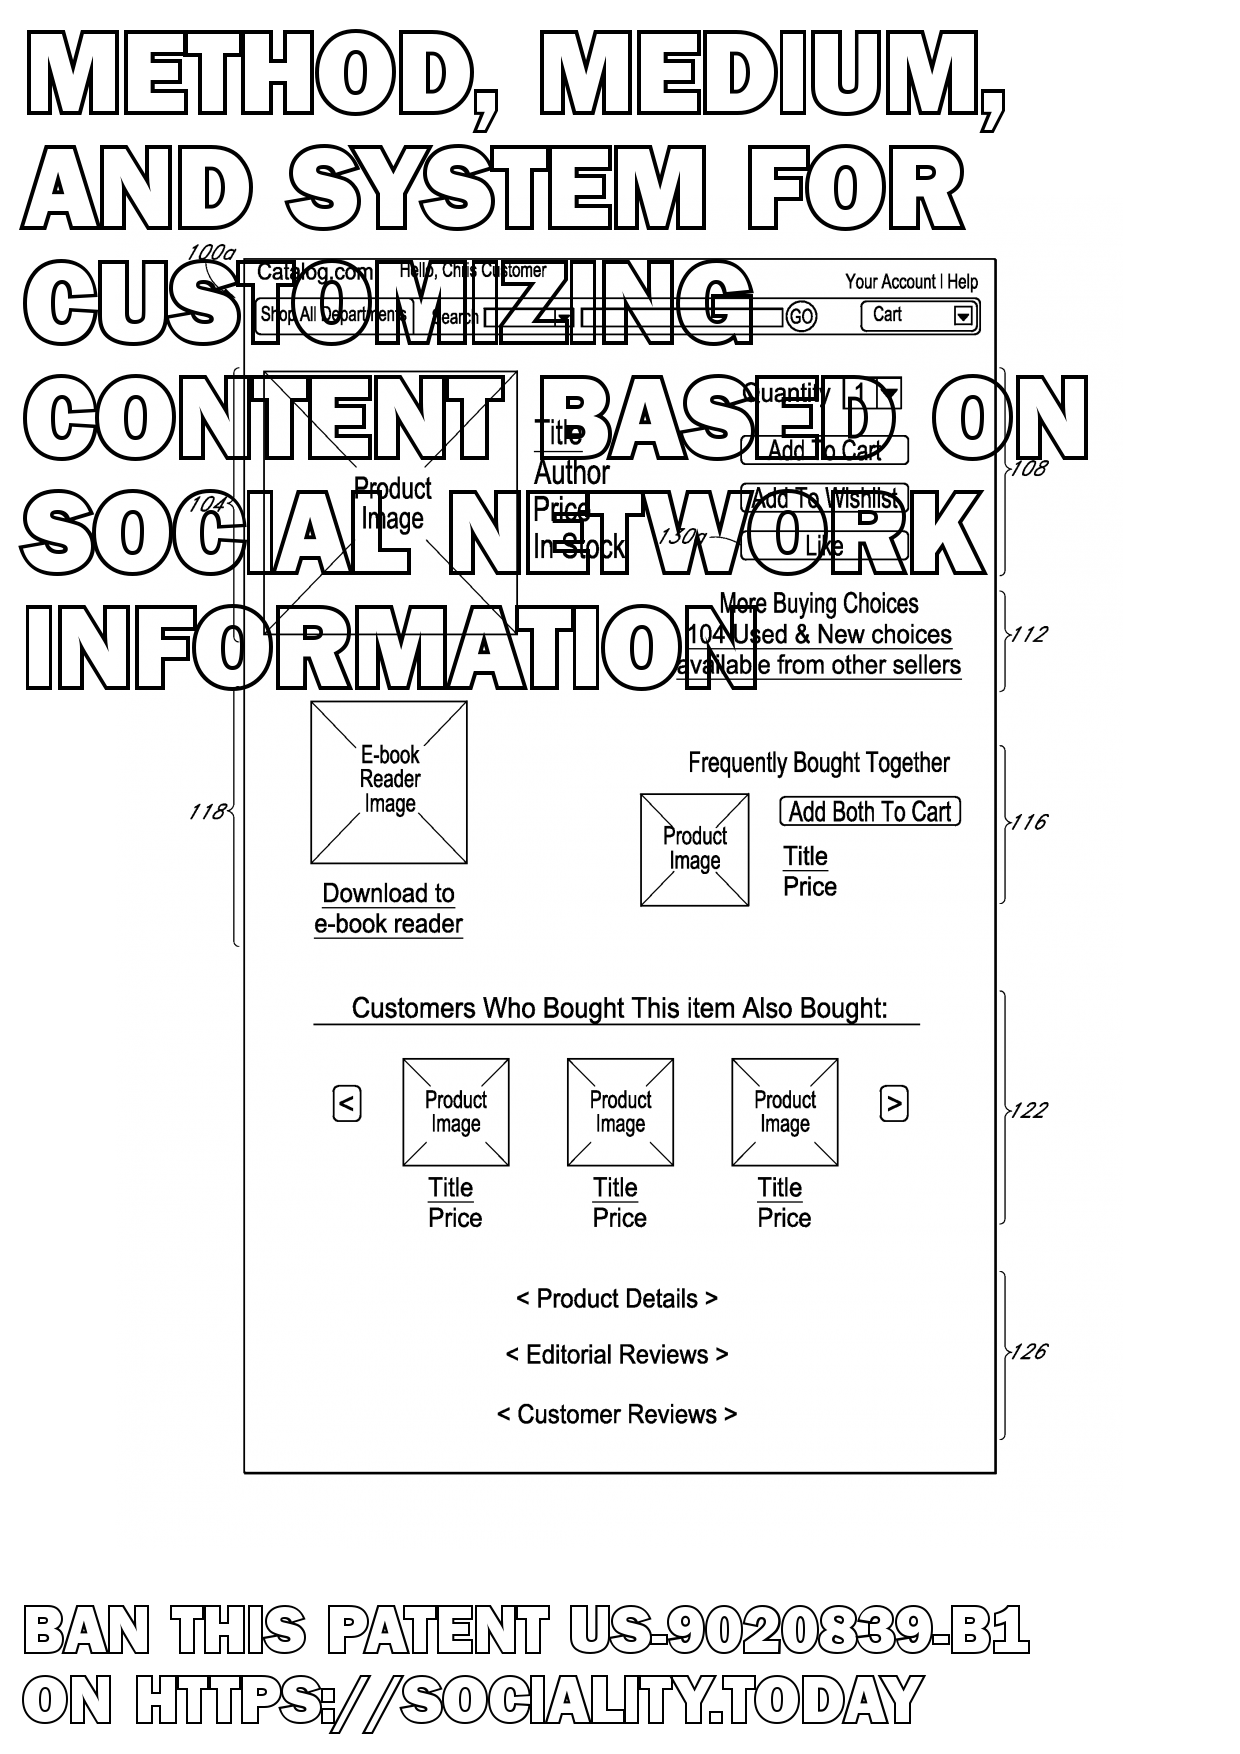 Method, medium, and system for customizing content based on social network information  - US-9020839-B1